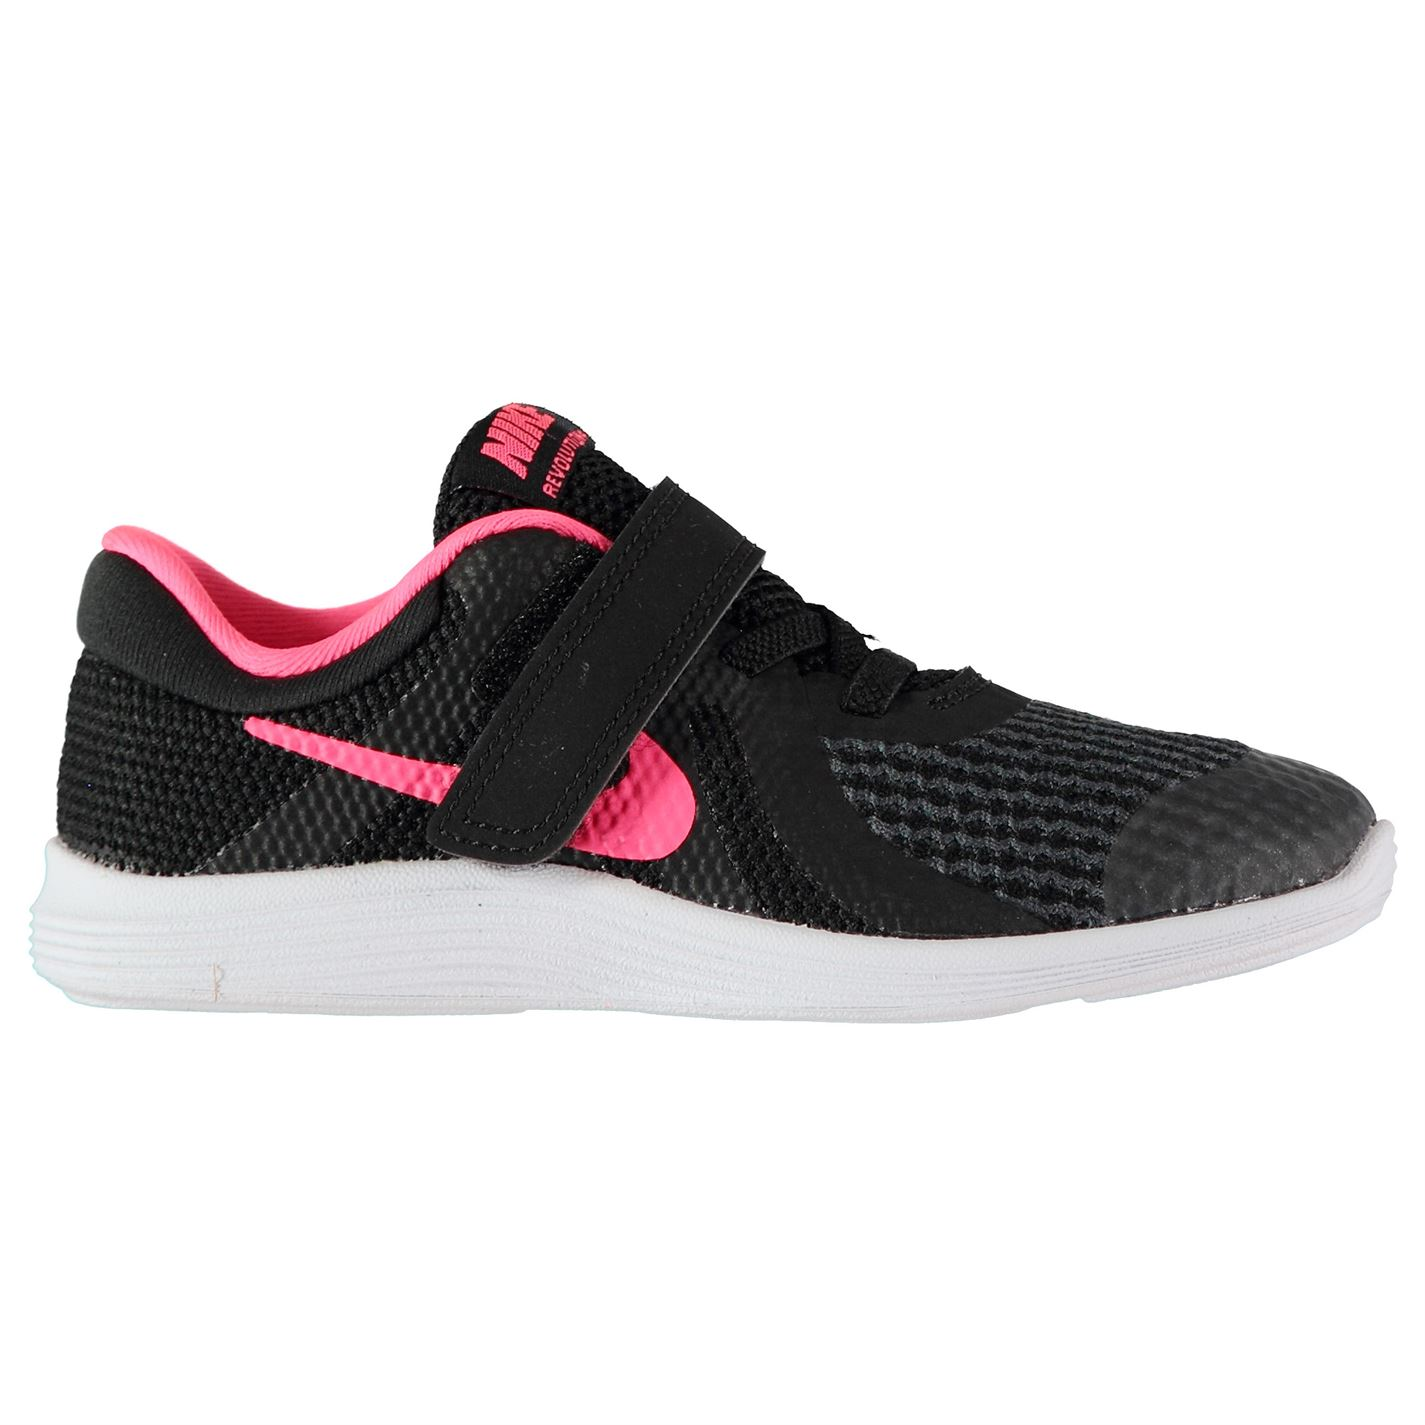 Nike Revolution 4 Baby/Toddler Shoe Black/Pink